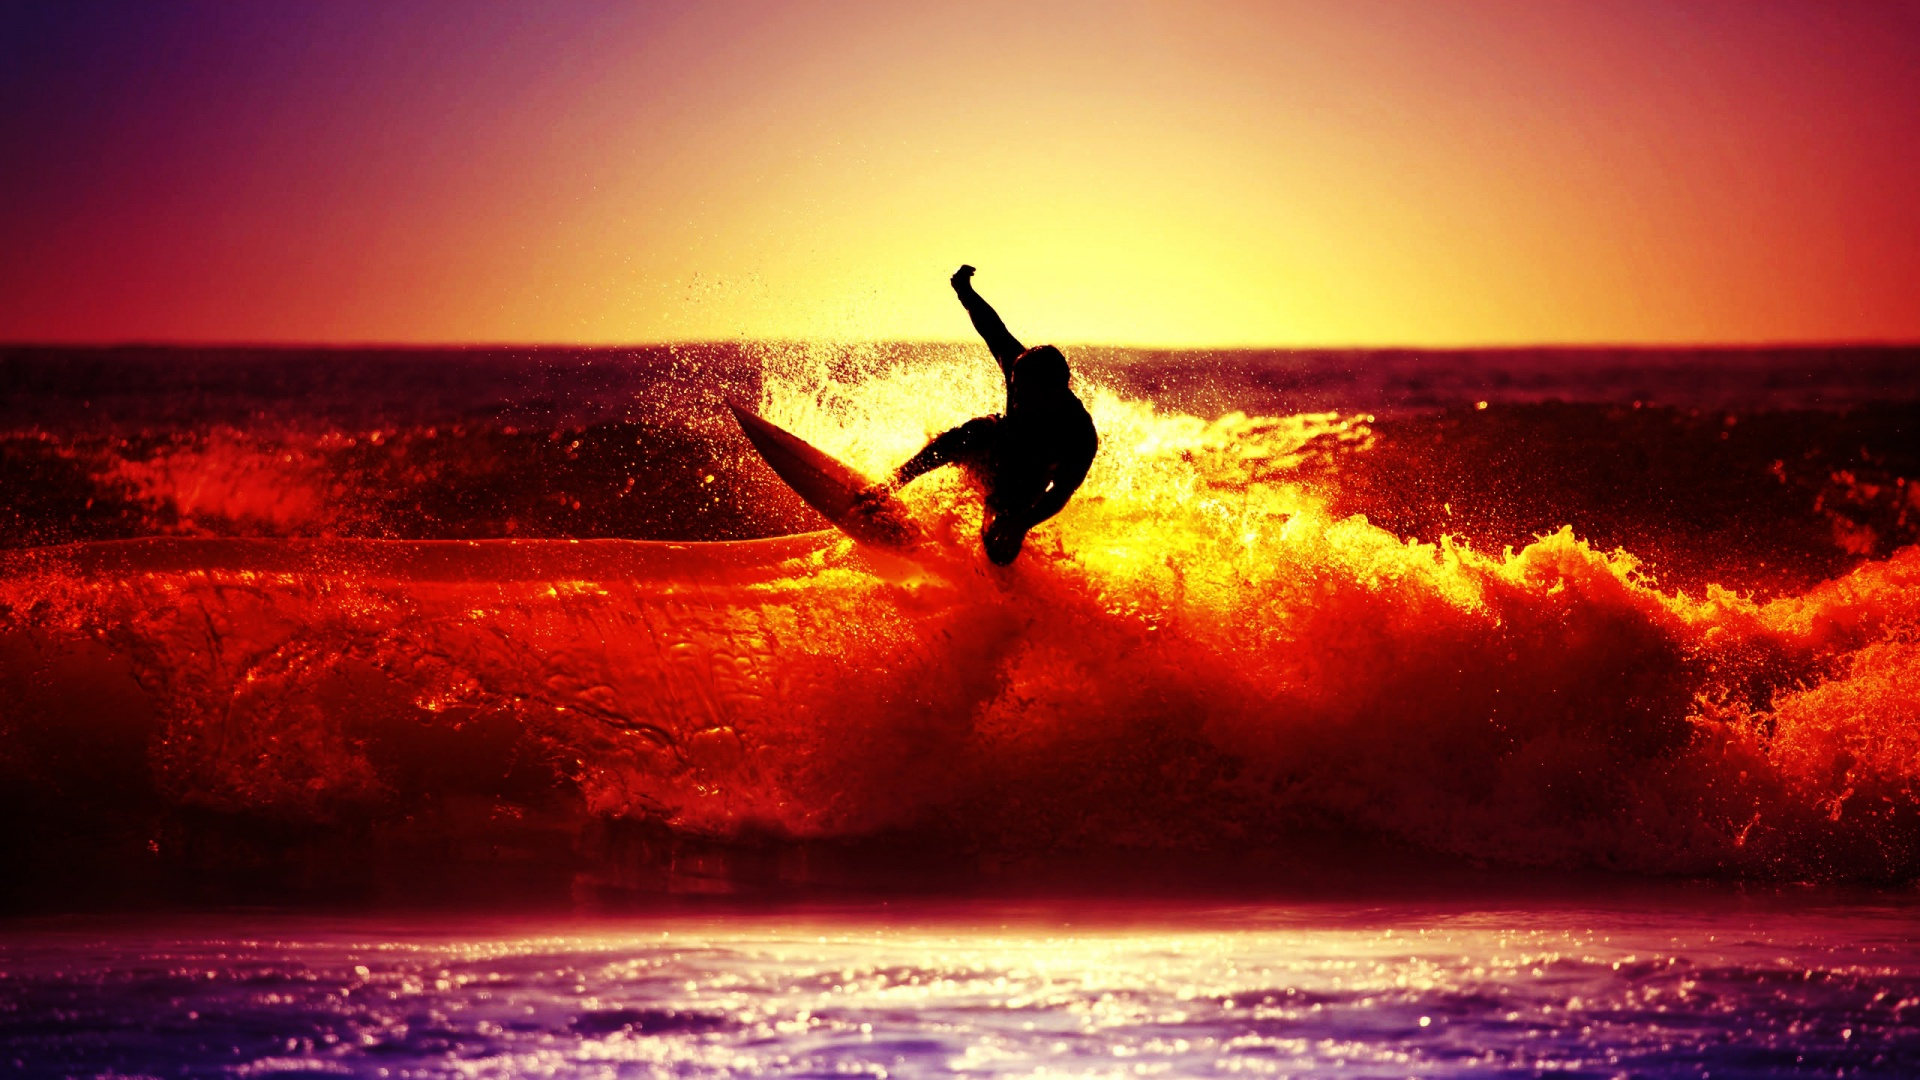 ... Free Tea Wallpaper · Surfing Wallpaper